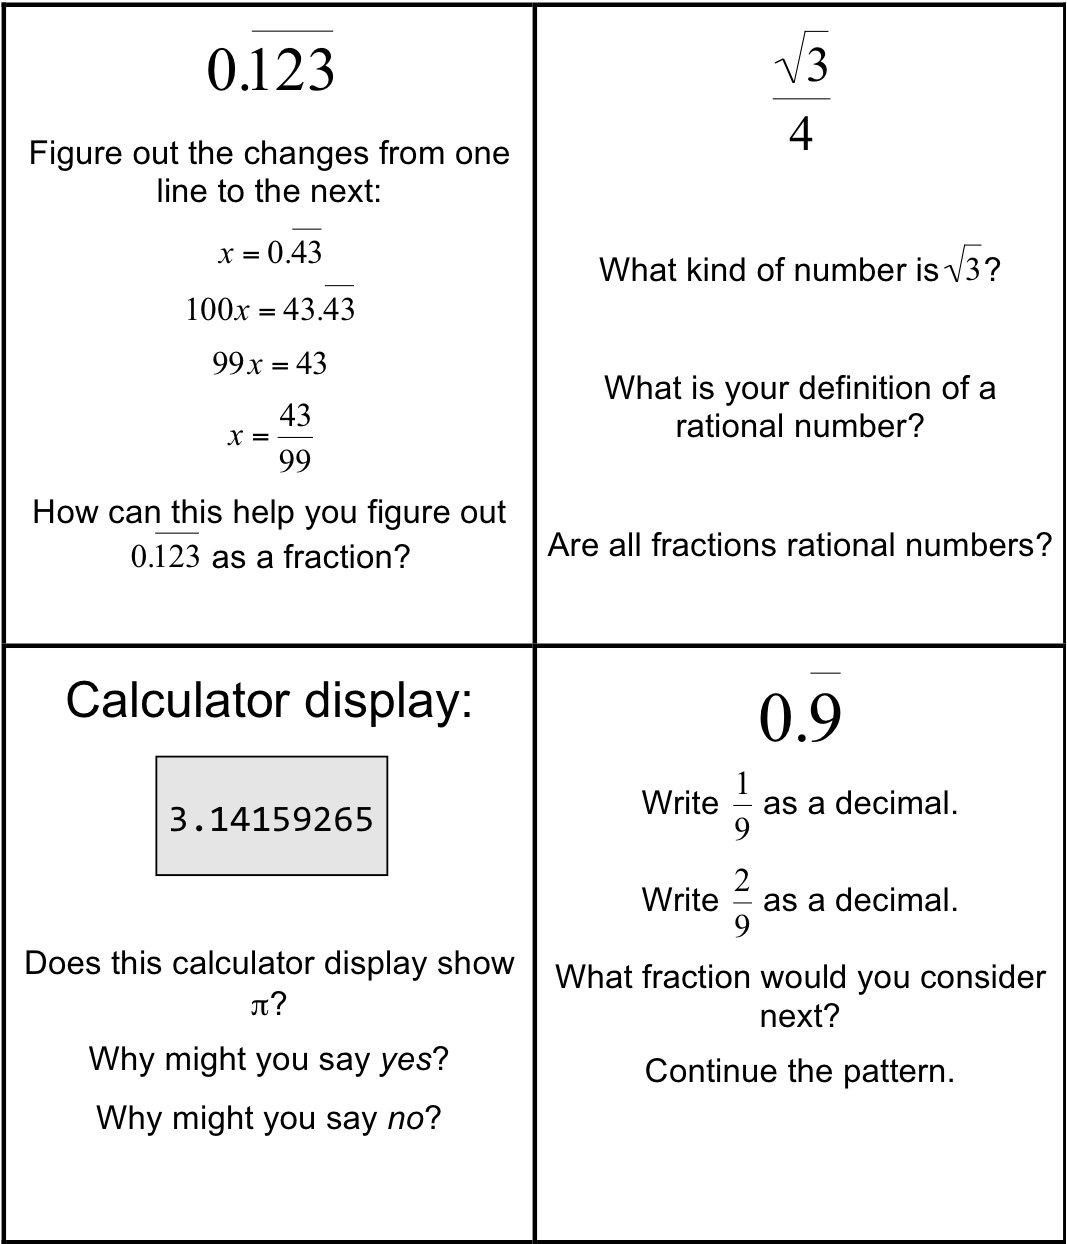 Rational Or Irrational Worksheet 3 Rational And Irrational Numbers Worksheet Pdf In 2020 In 2020 Rational Numbers Math Worksheets Irrational Numbers